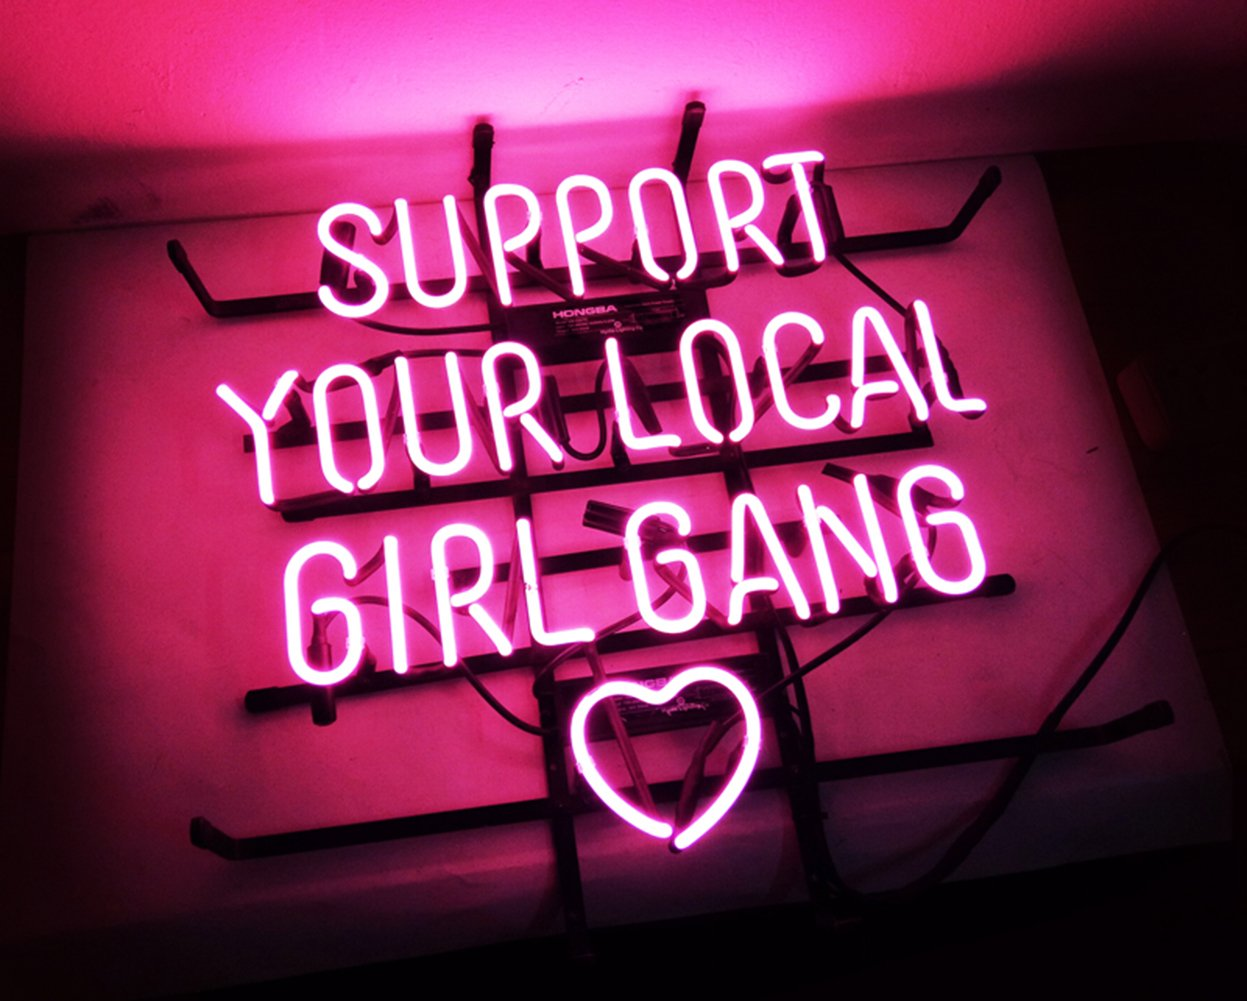 New Custom Neon Sign Pink Room Decor 'Support Your Local Girl Bang' for Bedroom Bar Beer Pub Home Hotel Beach Bar Garage Cocktail Recreational Game Room 18'' x 16'' by KUKUU (Image #4)